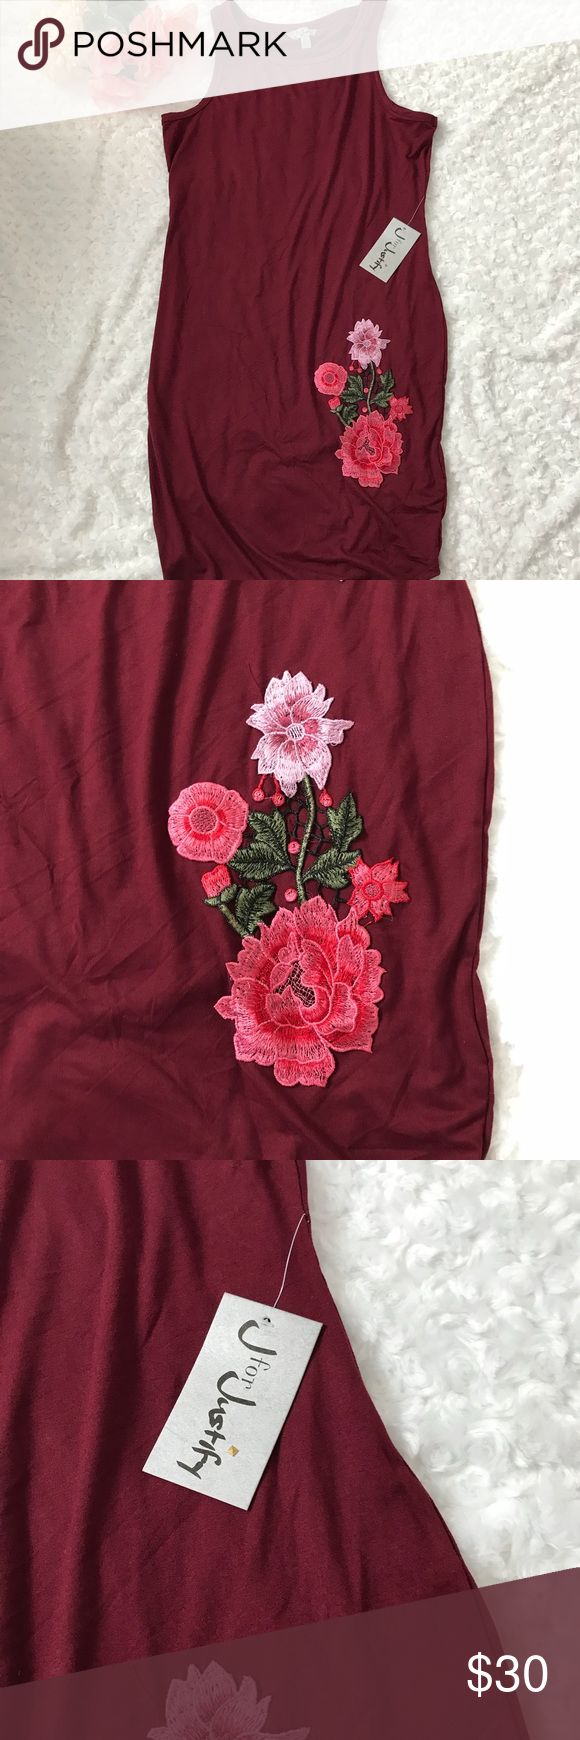 ❣️ J Justify TEE tank Maroon dress ❣️ ❣️ J Justify TEE tank Maroon dress ❣️ I wish you could feel how soft this material is! New with tags tee shirt DRESS. Beautiful maroon color with flower accent on the bottom. Tank sleeves. Perfect for a casual Saturday outfit, or a Sunday baby shower! J for Justify Dresses Midi